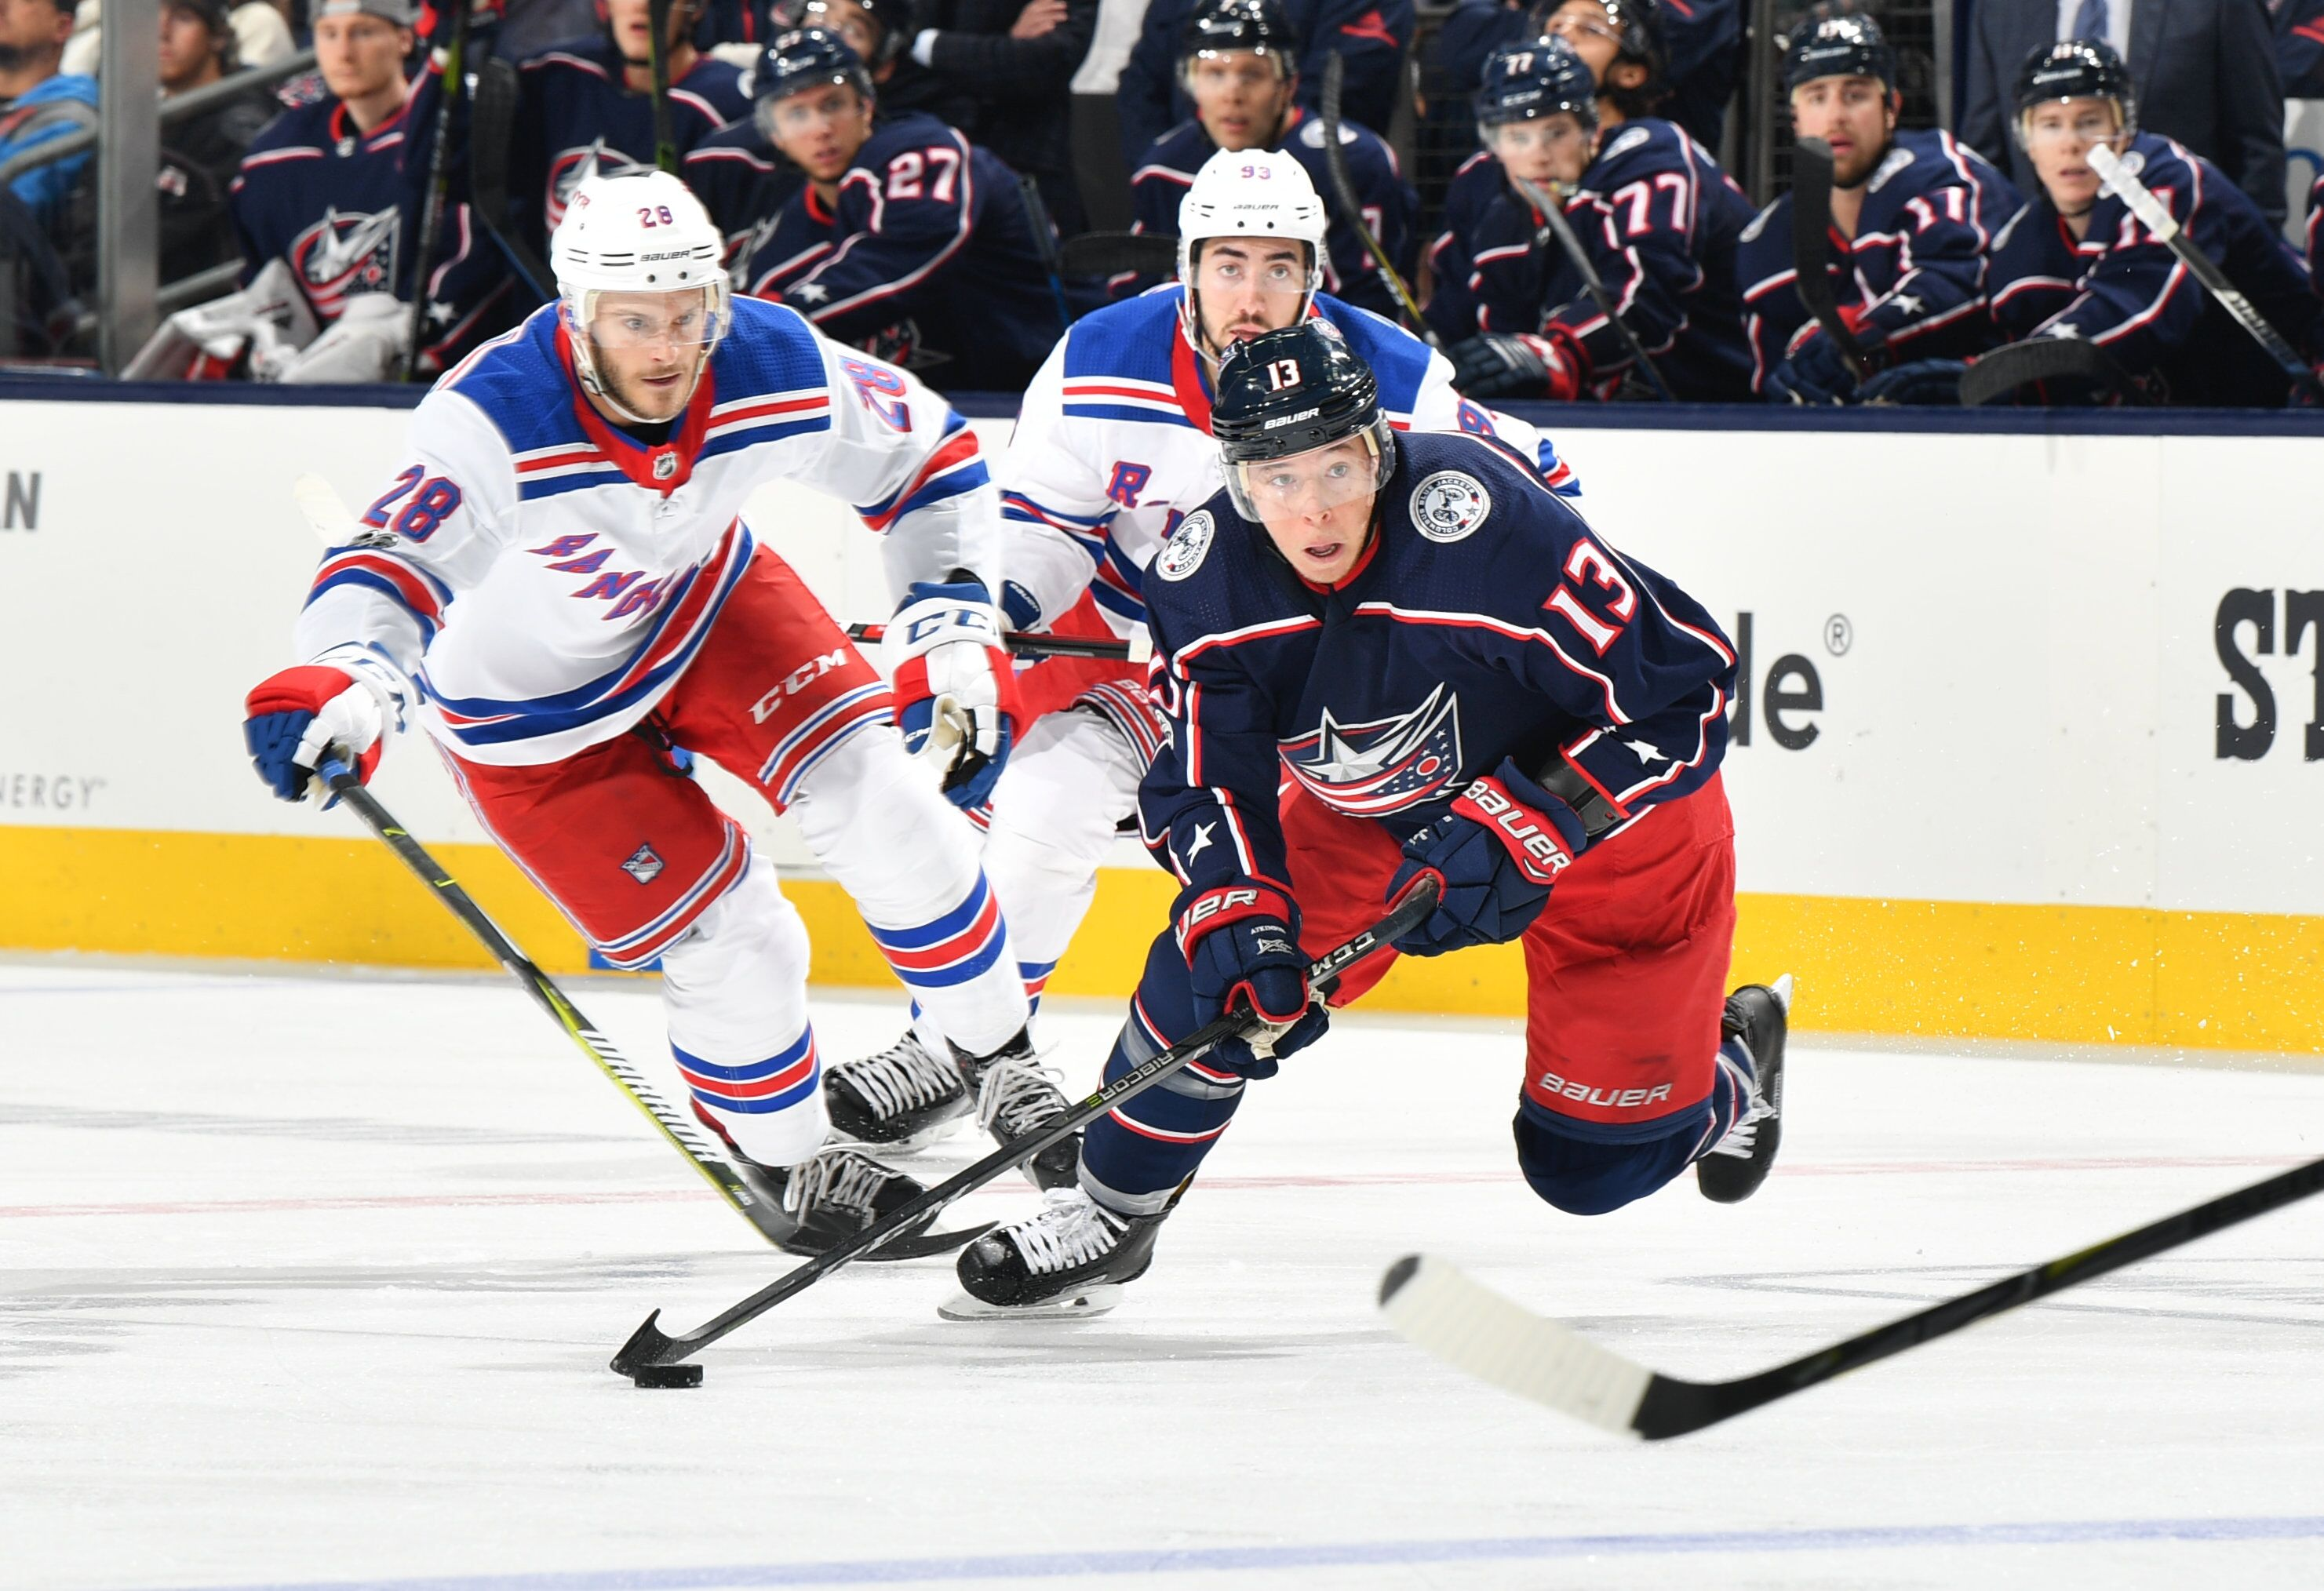 861055742-new-york-rangers-v-columbus-blue-jackets.jpg